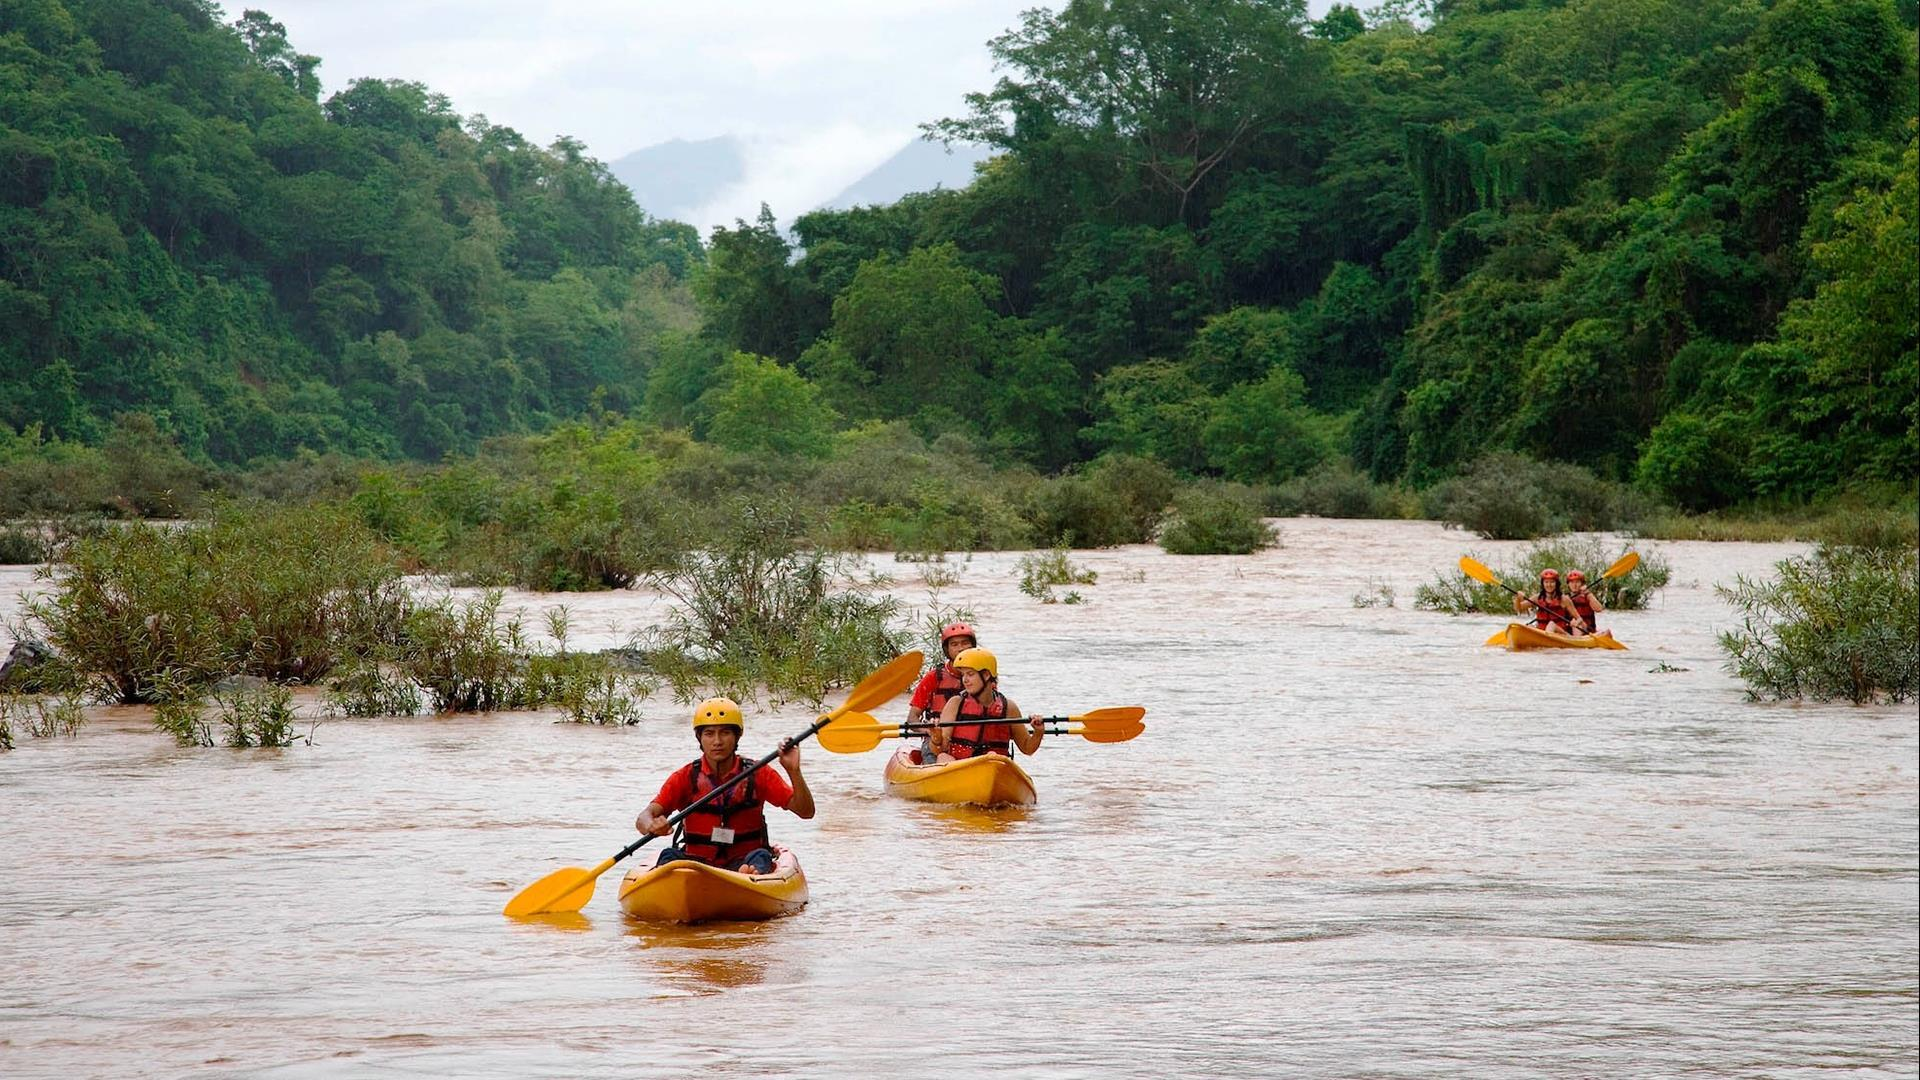 Laos, Luang Prabang : Nam Ou River Kayak Excursion  -1 Day | Whitewater Kayaking on the Nam Ou River